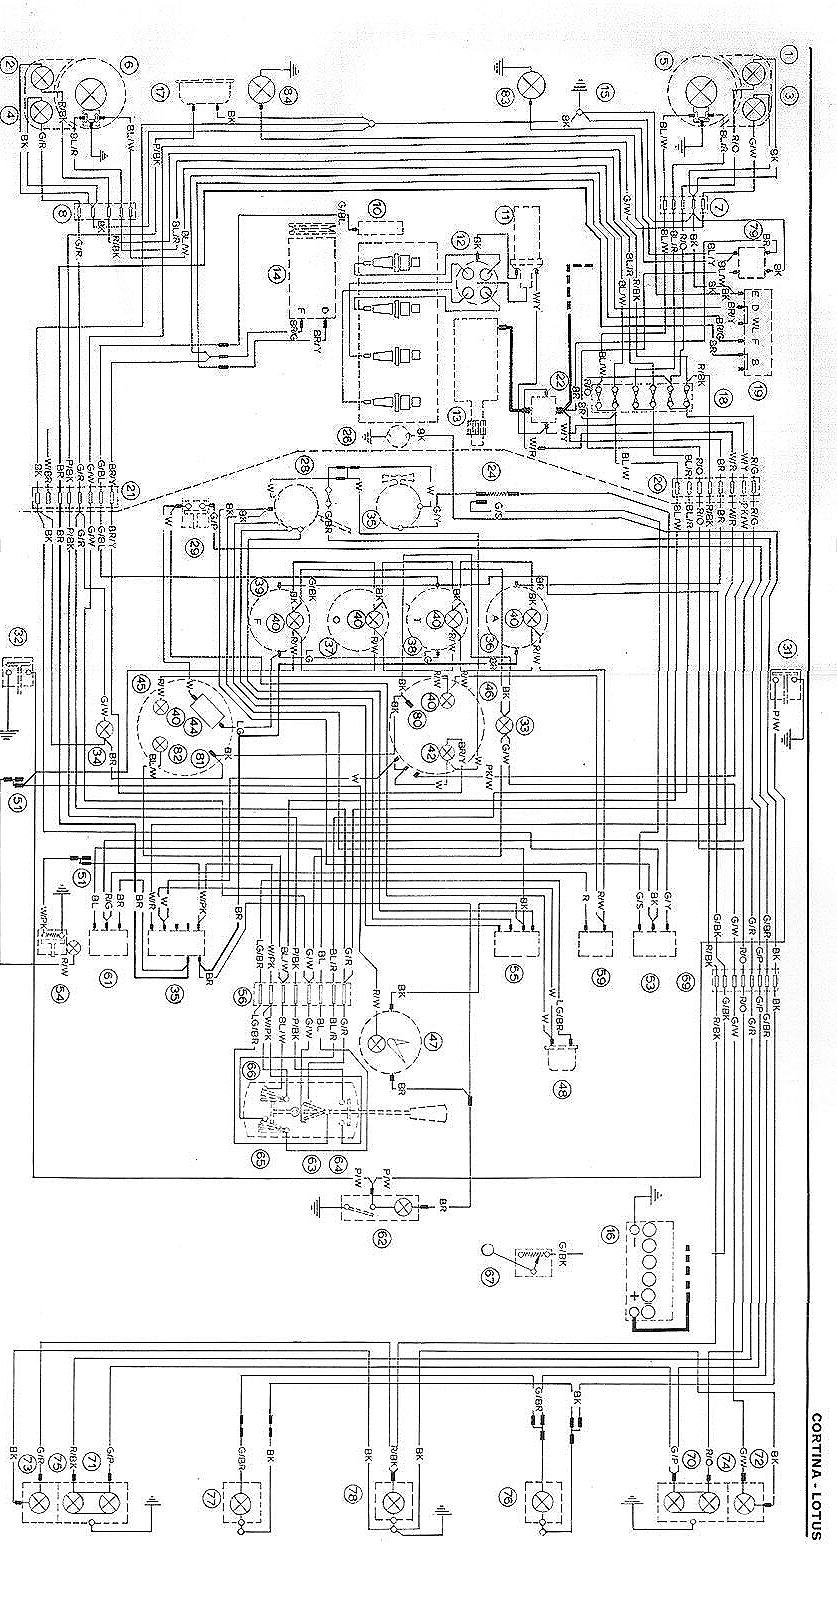 hight resolution of wiring diagram jaguar mk2 wiring diagram expert jaguar s type wiring diagram pdf jaguar wiring diagram pdf